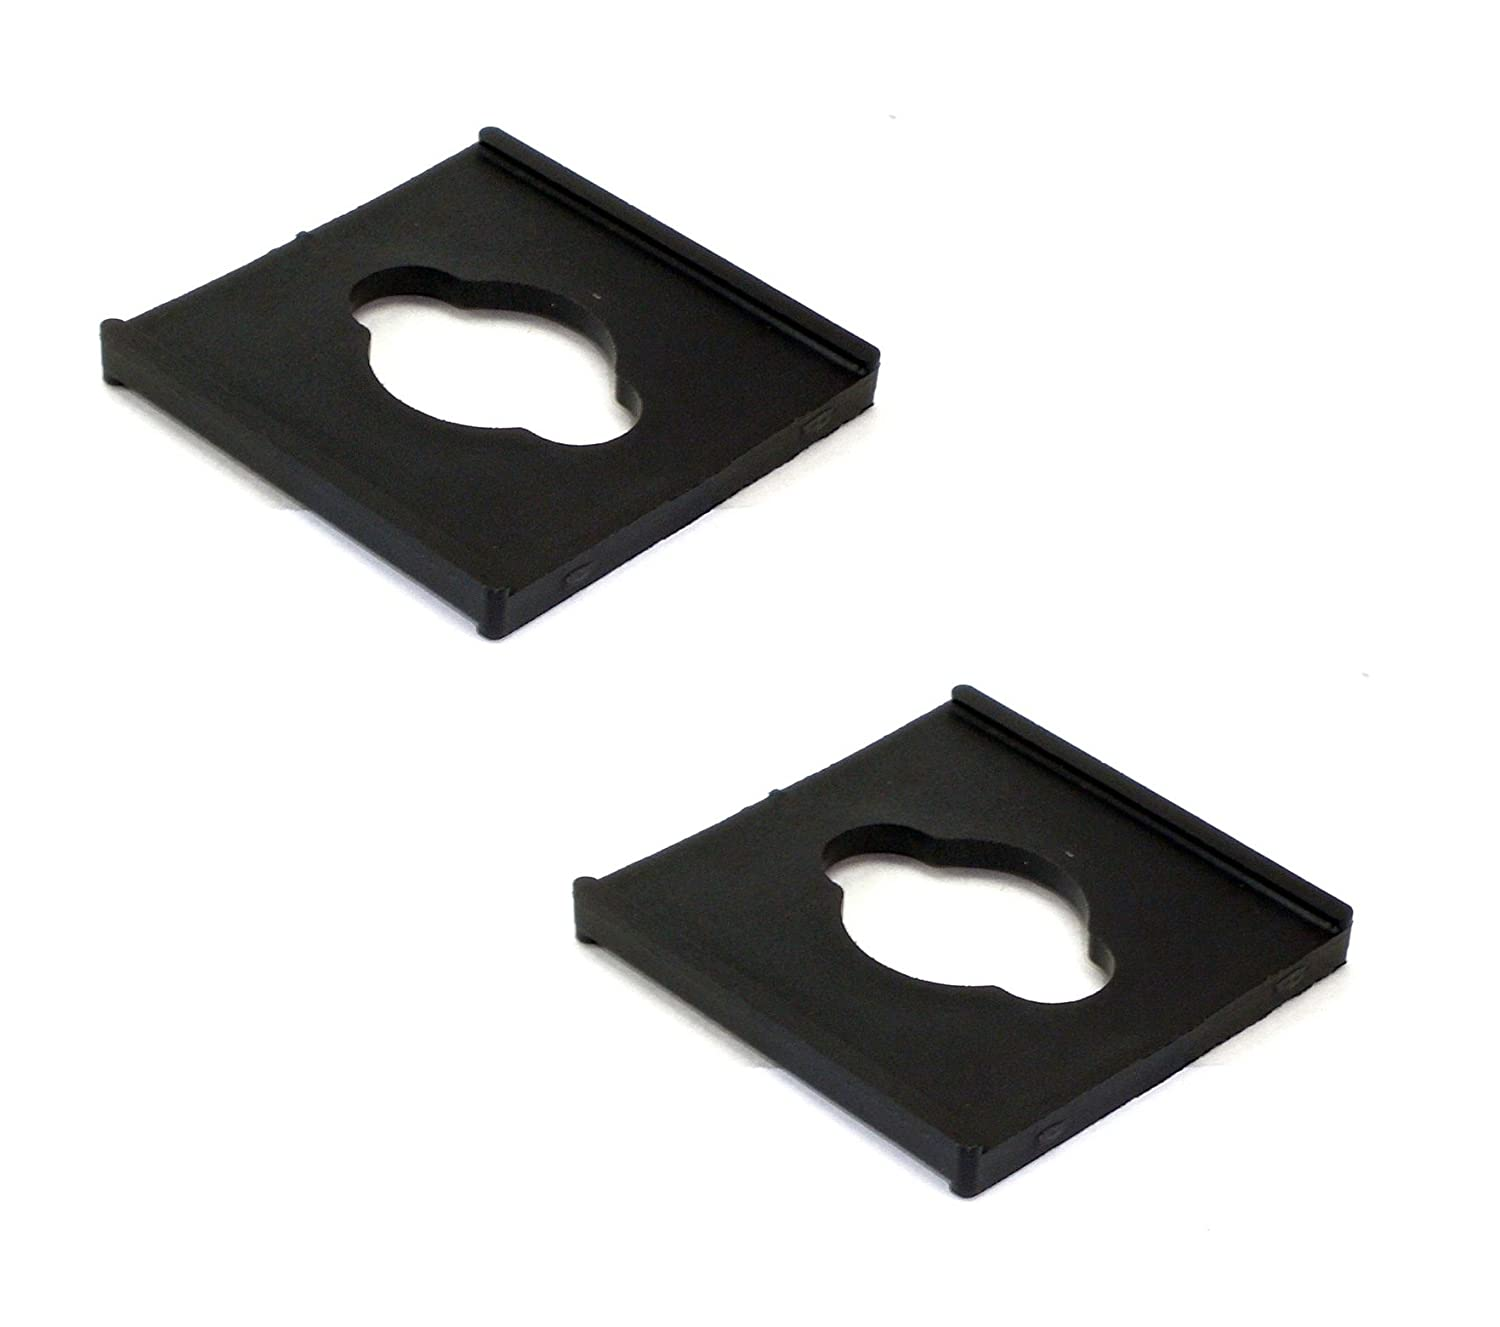 Black & Decker CMM1000 Mower Replacement Blade Insulator (2 Pack) # 241381-01-2pk